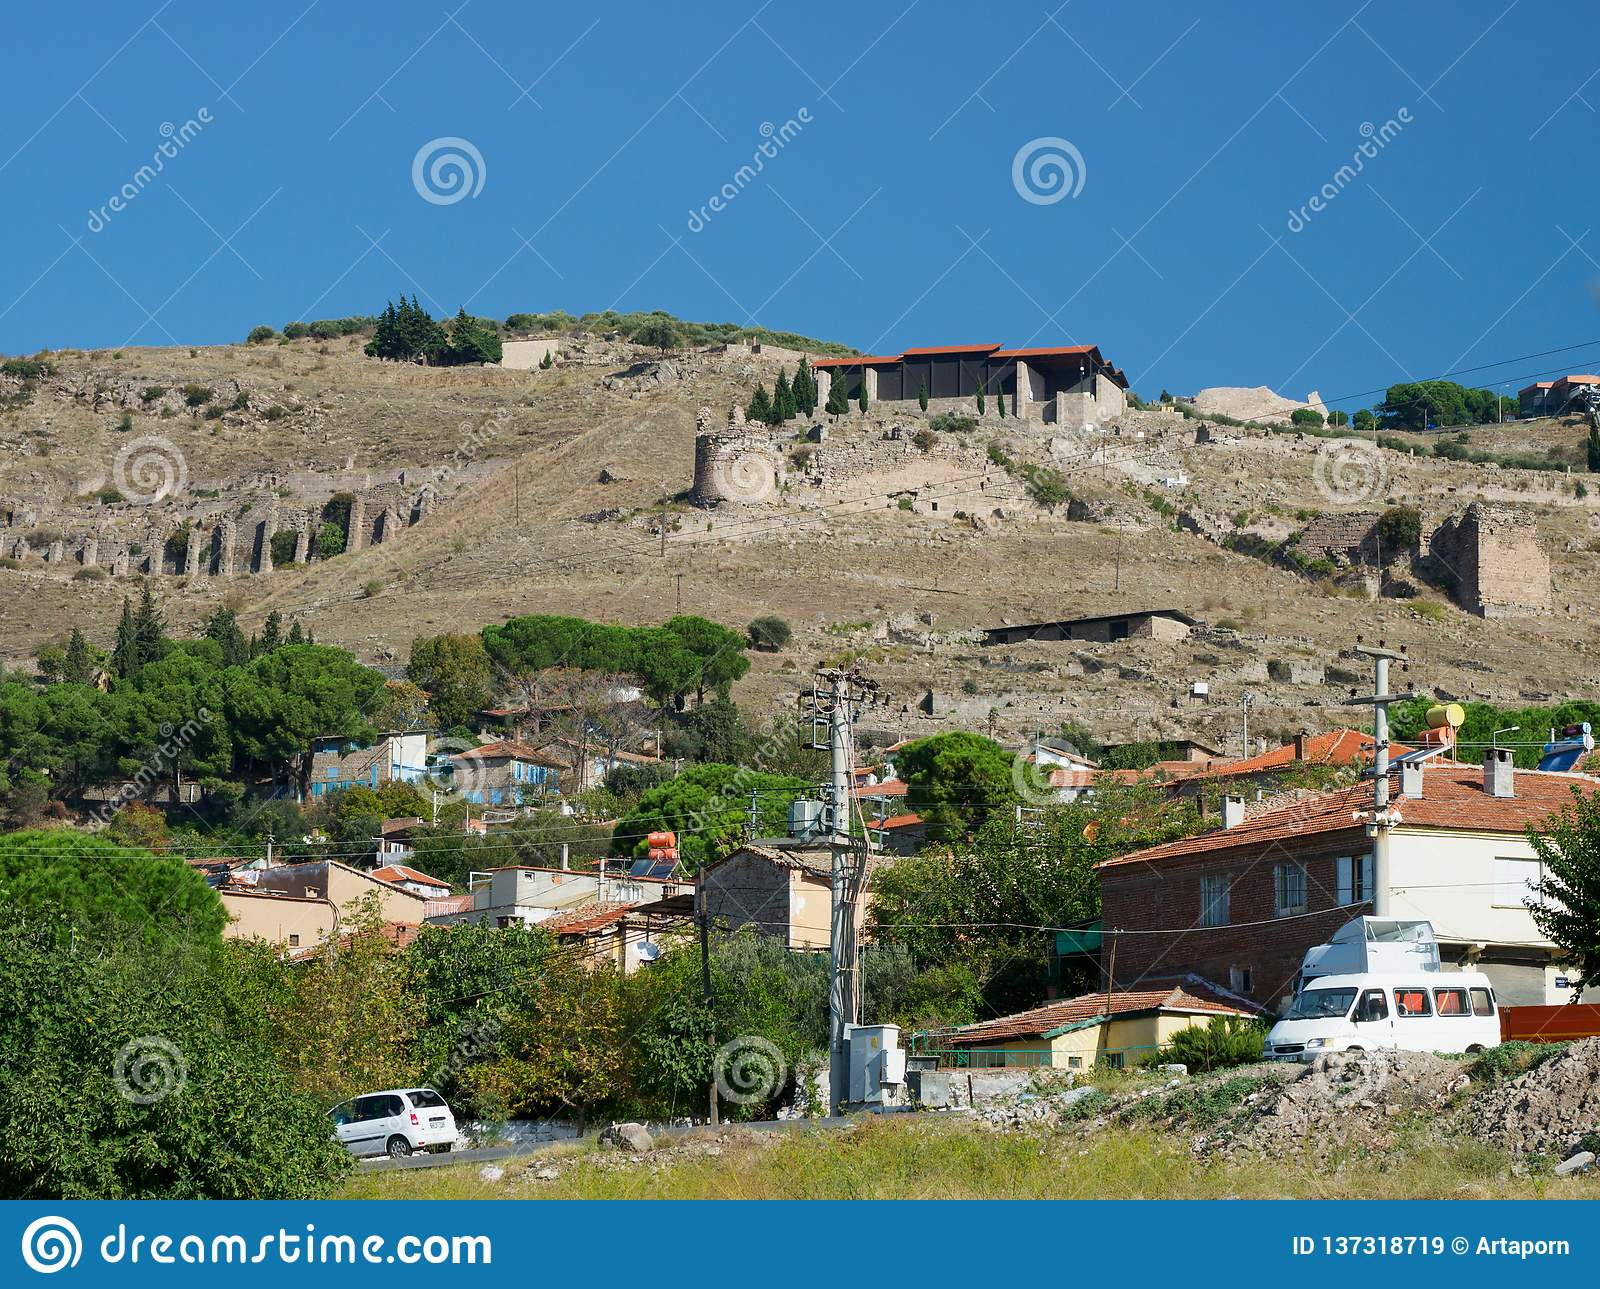 The community in the ancient city of Pergamum in the Acropolis area.